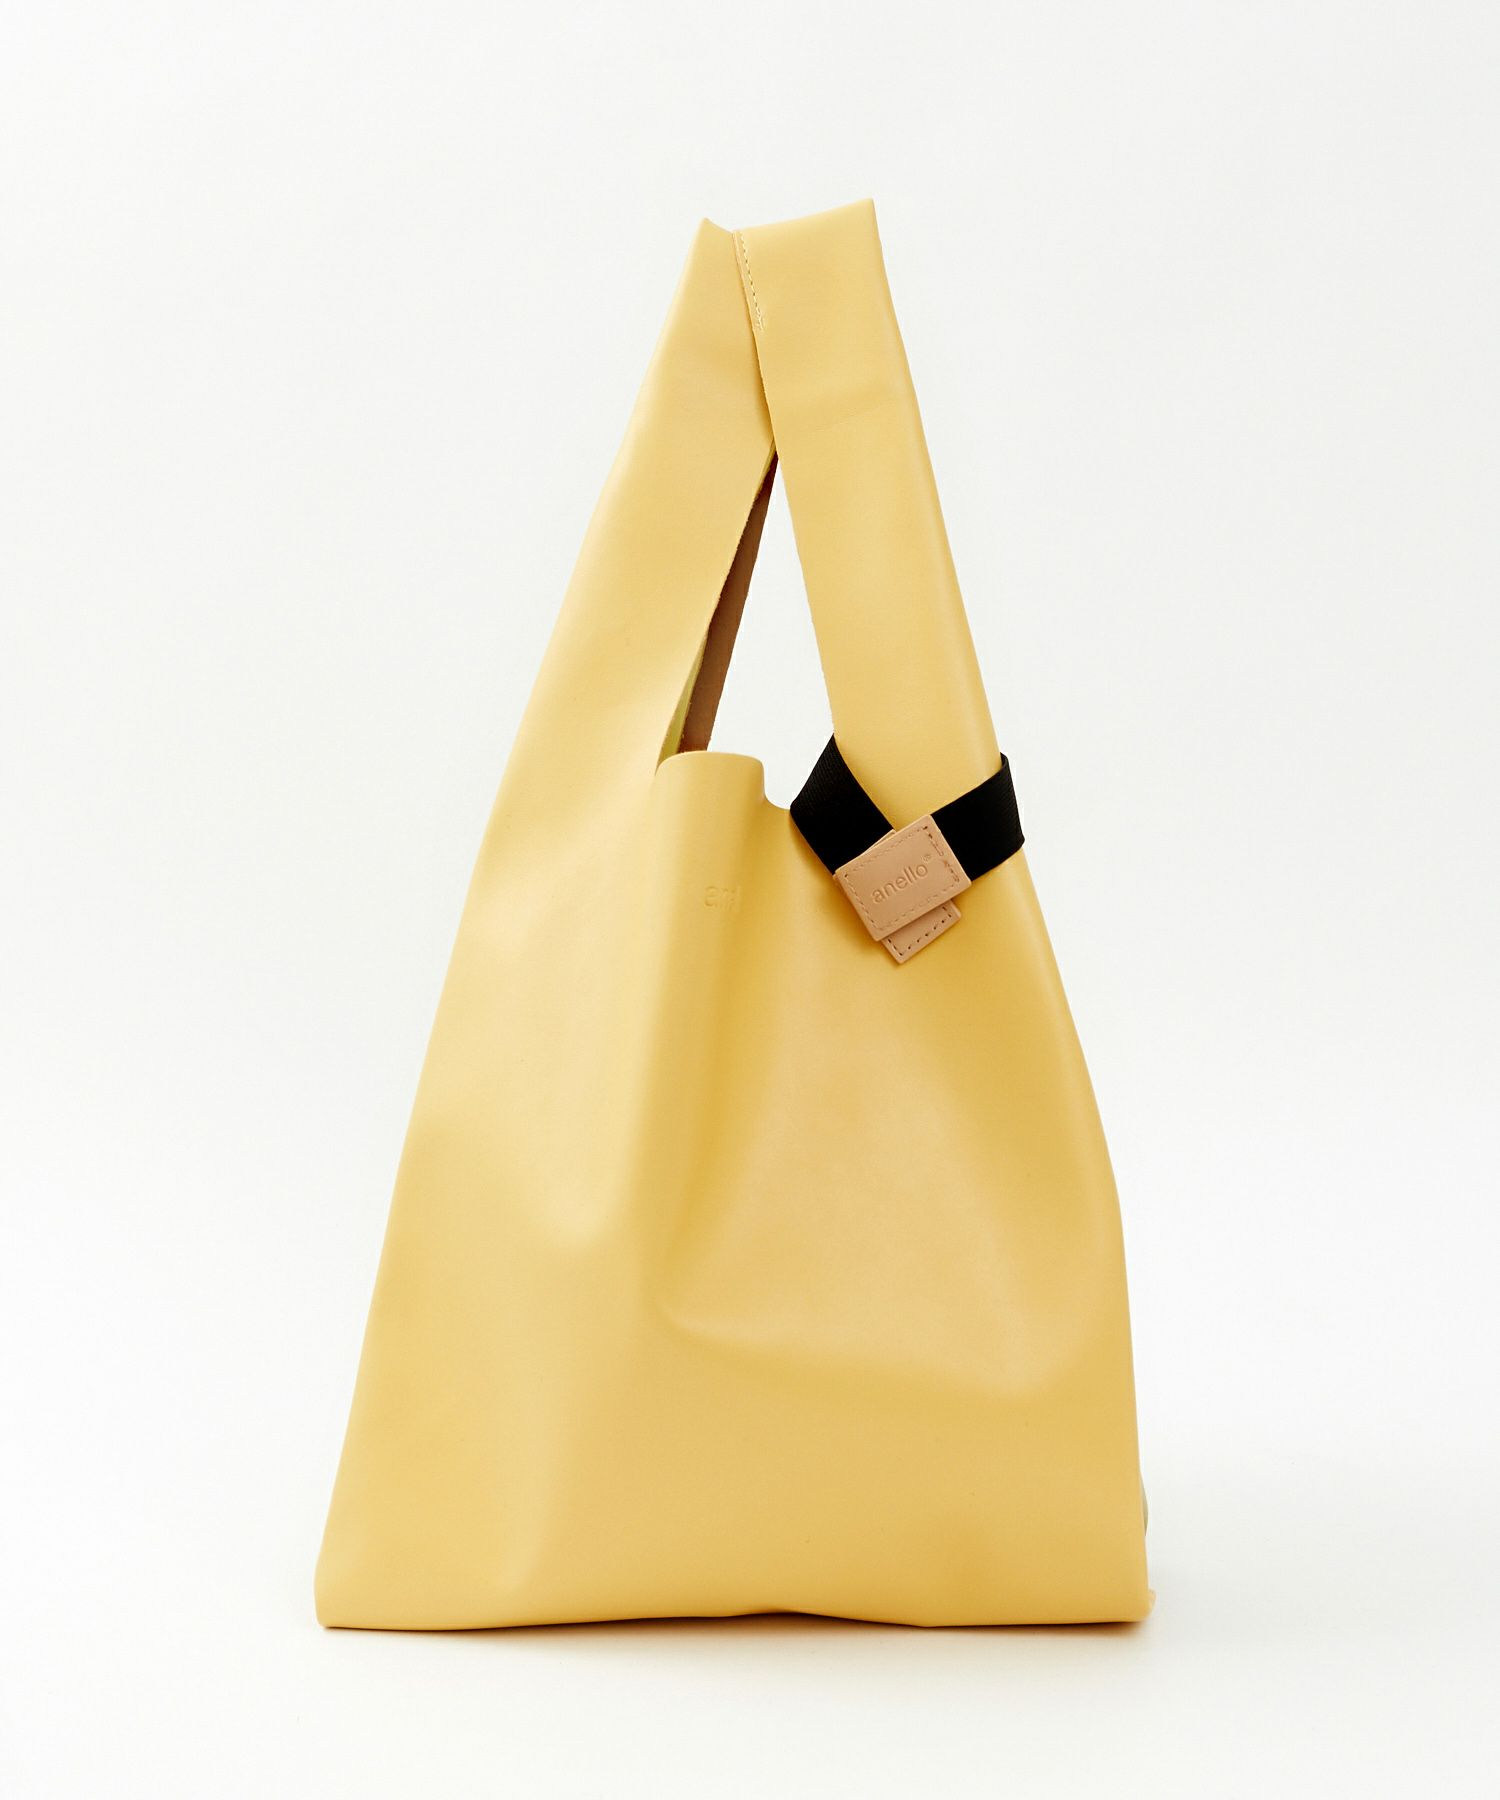 Anello ALTON PU Leather Tote Bag ATB3647 Yellow Japan Original Official Authentic Real Genuine Bag Free Shipping Worldwide Special Discount Low Prices Great Offer